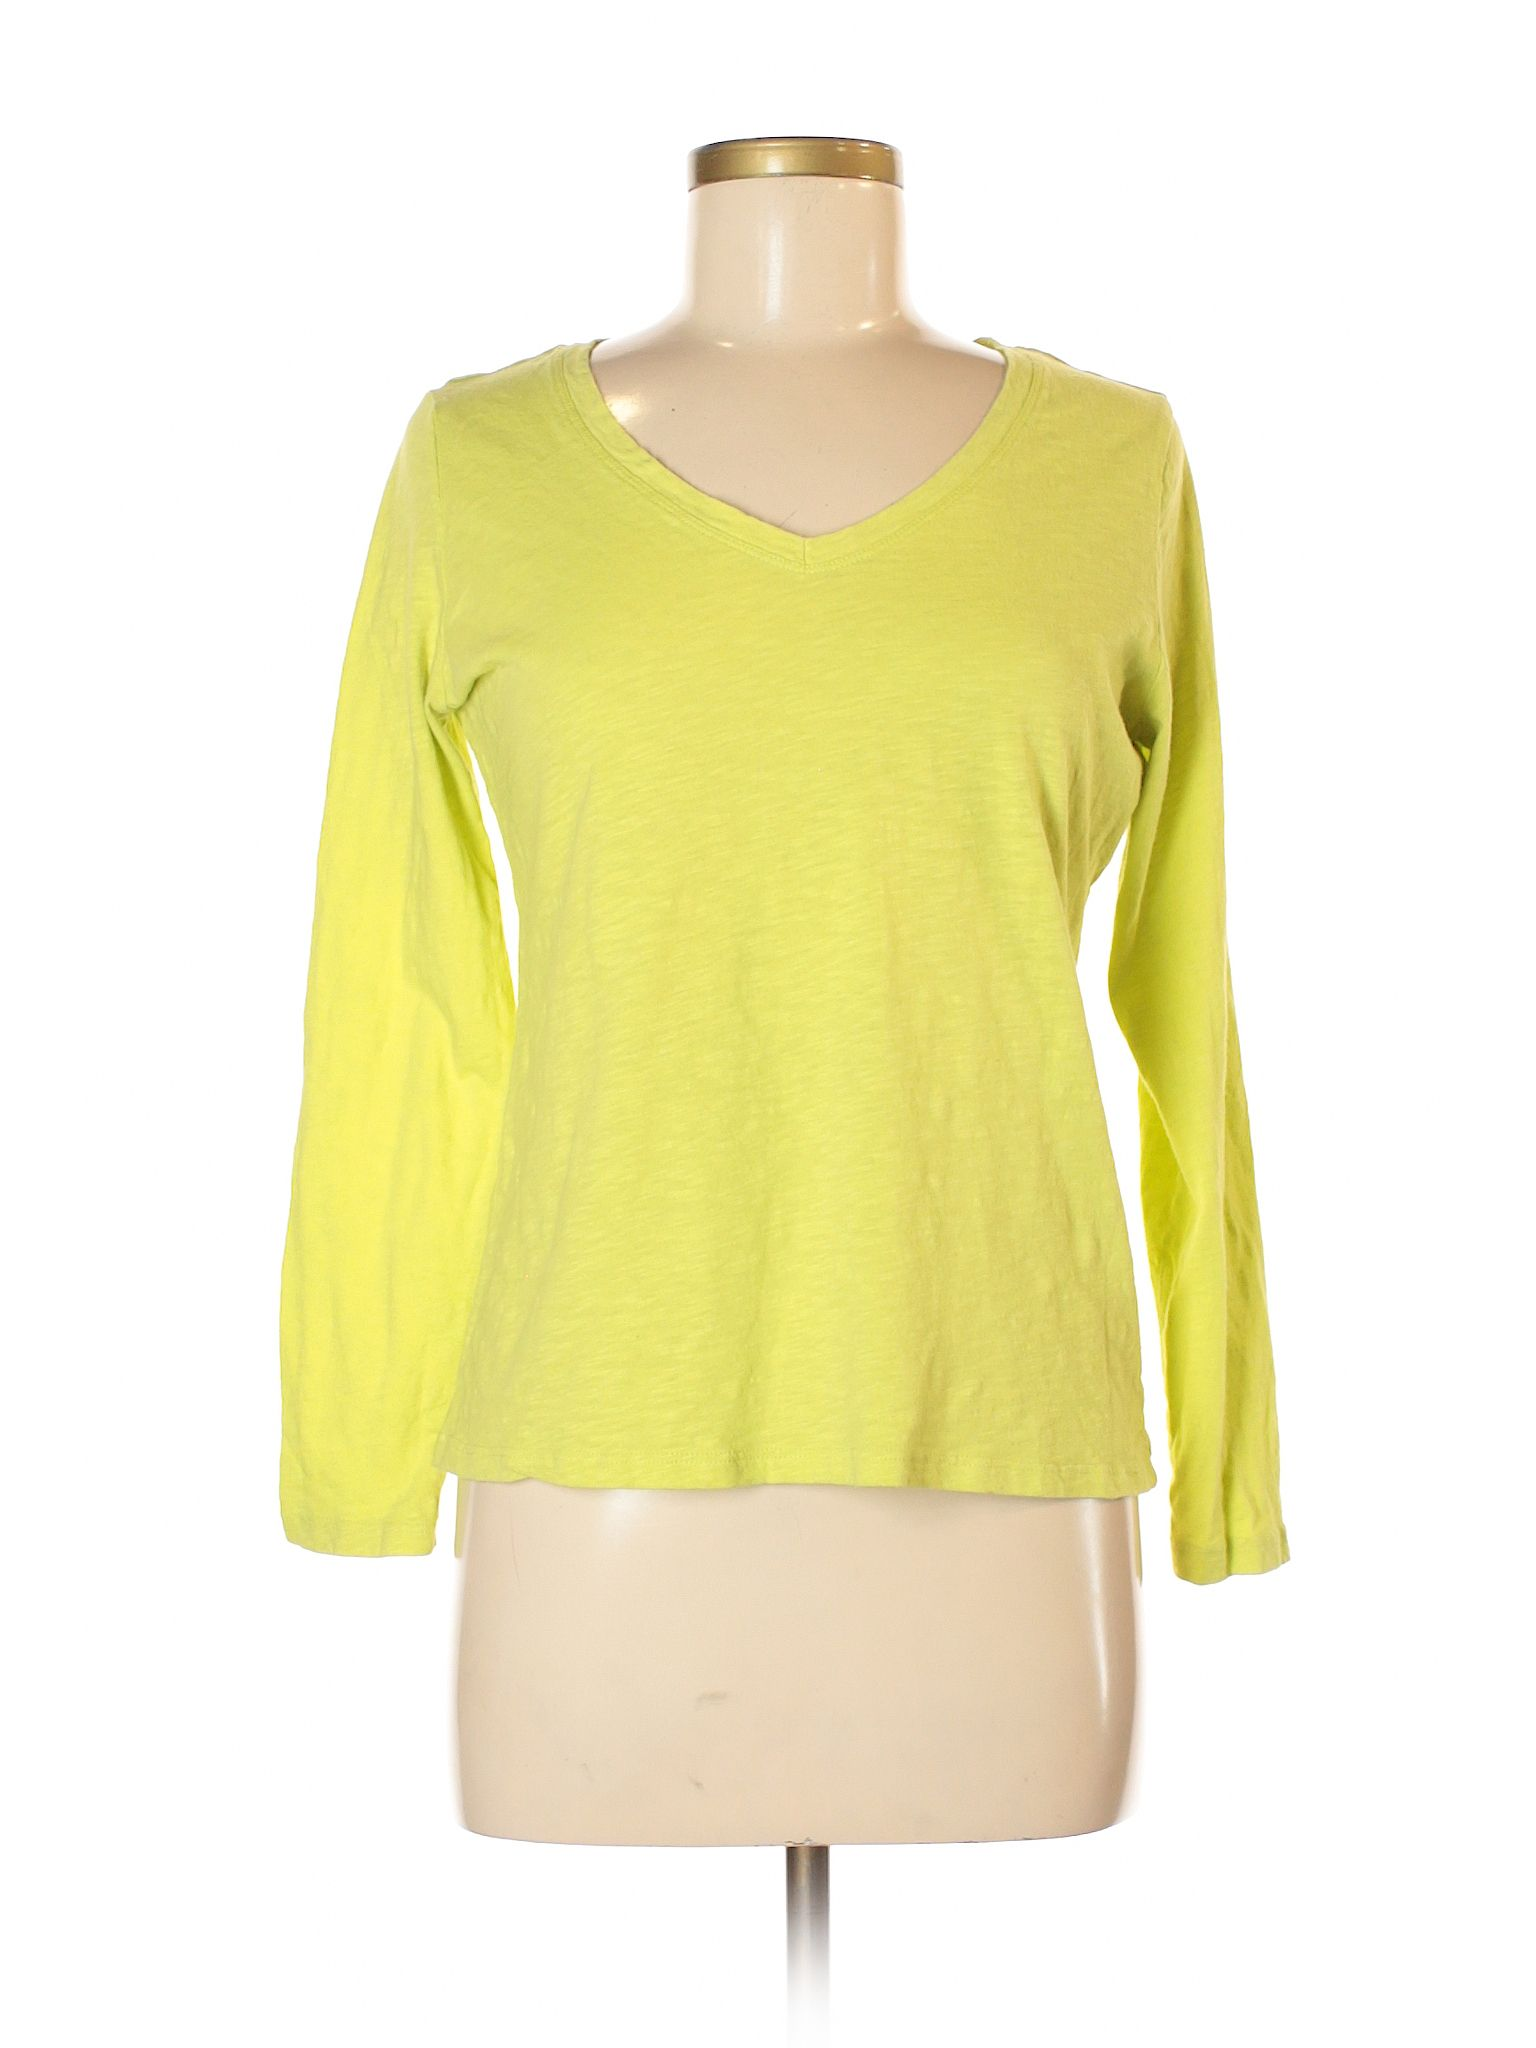 Jcpenney Long Sleeve T Shirt: Size 8.00 Yellow Women\'s Tops - $5.99 ...